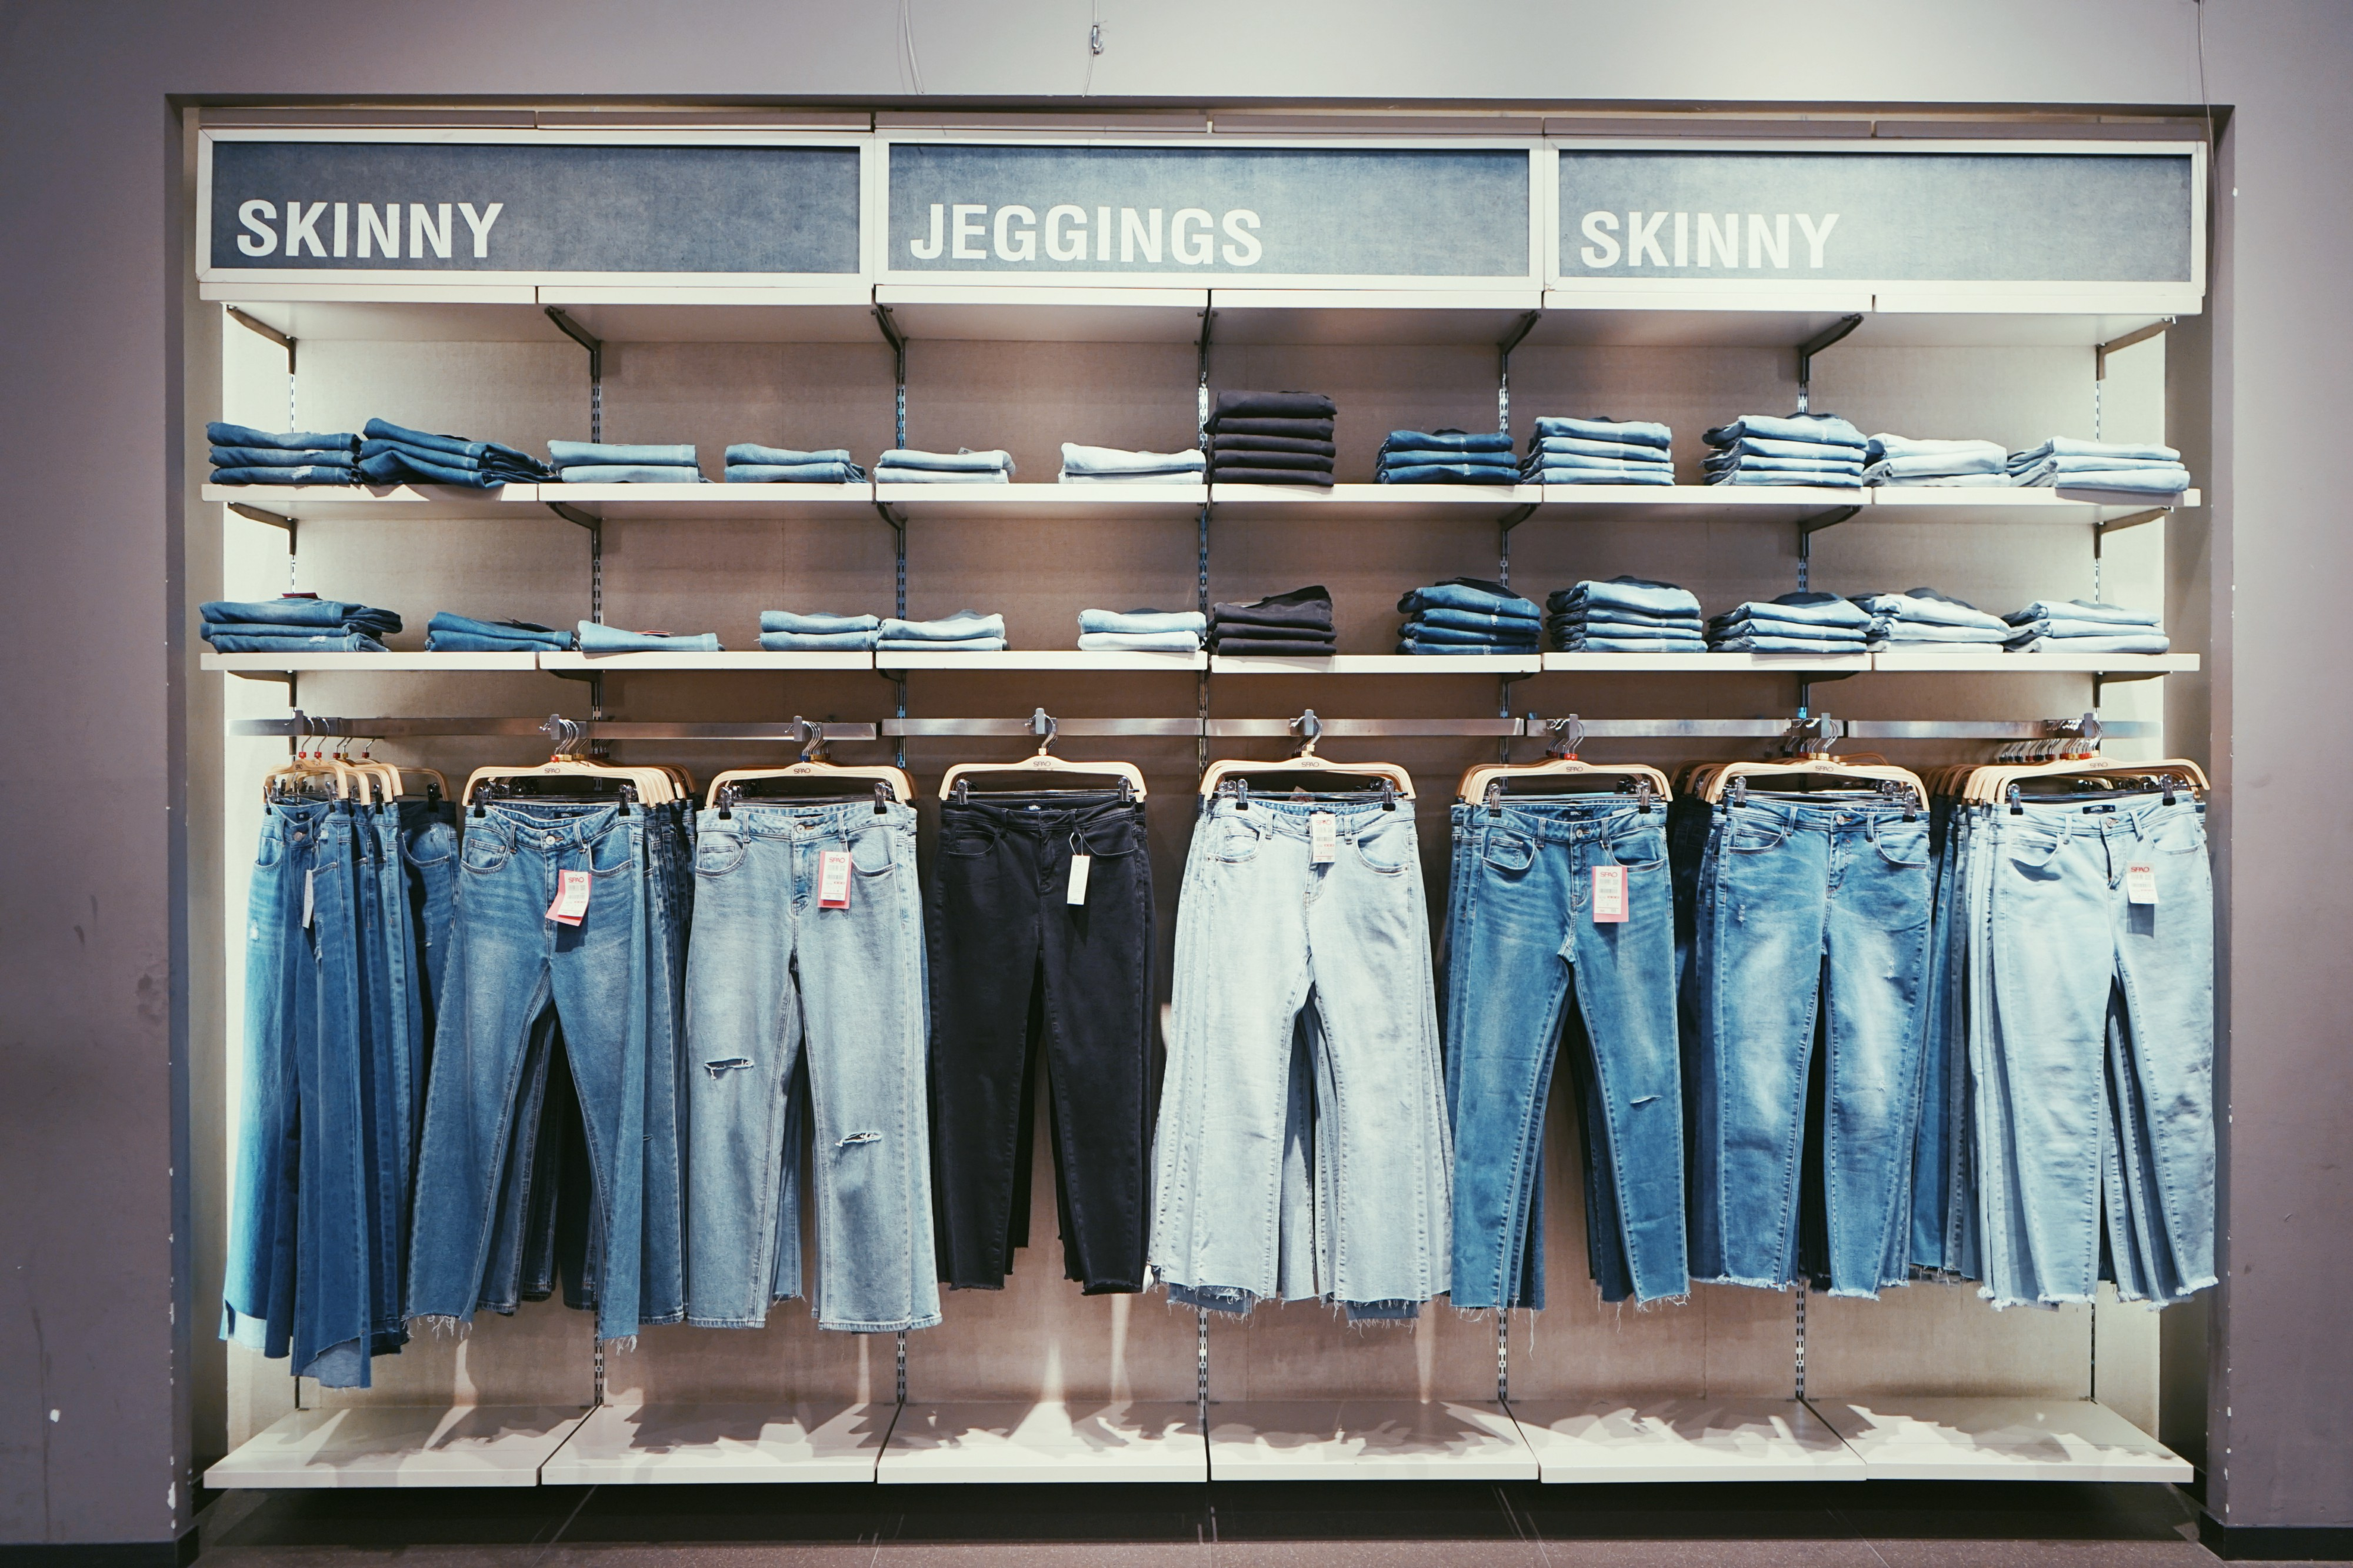 Many jeans hanging in a store